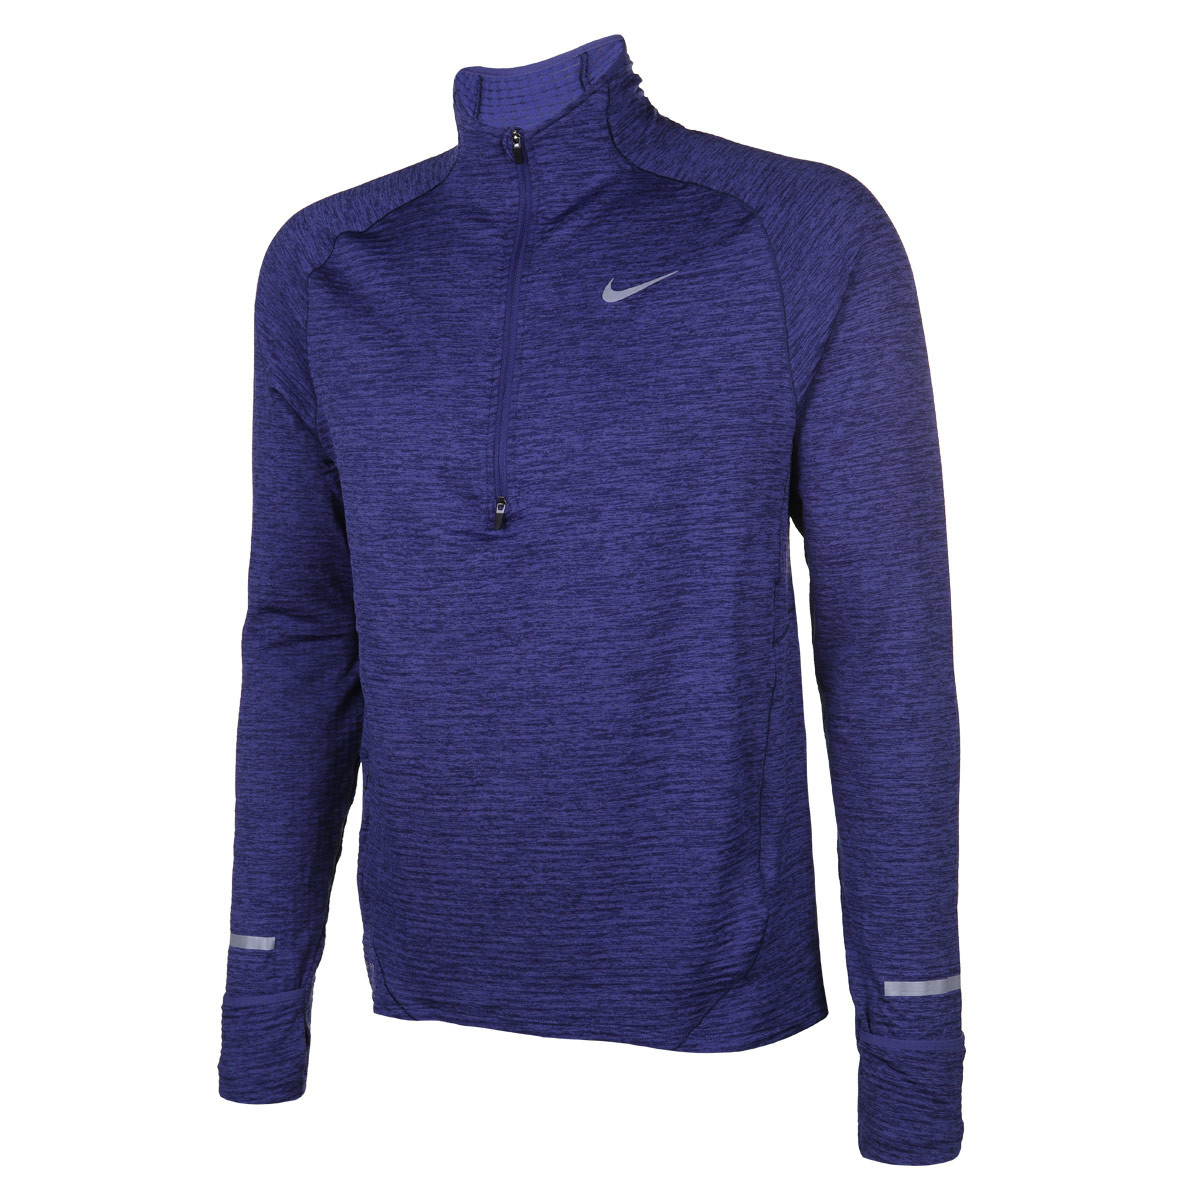 88aaa8626a405 Nike Sphere Element Mens Half Zip Long Sleeve Running Top